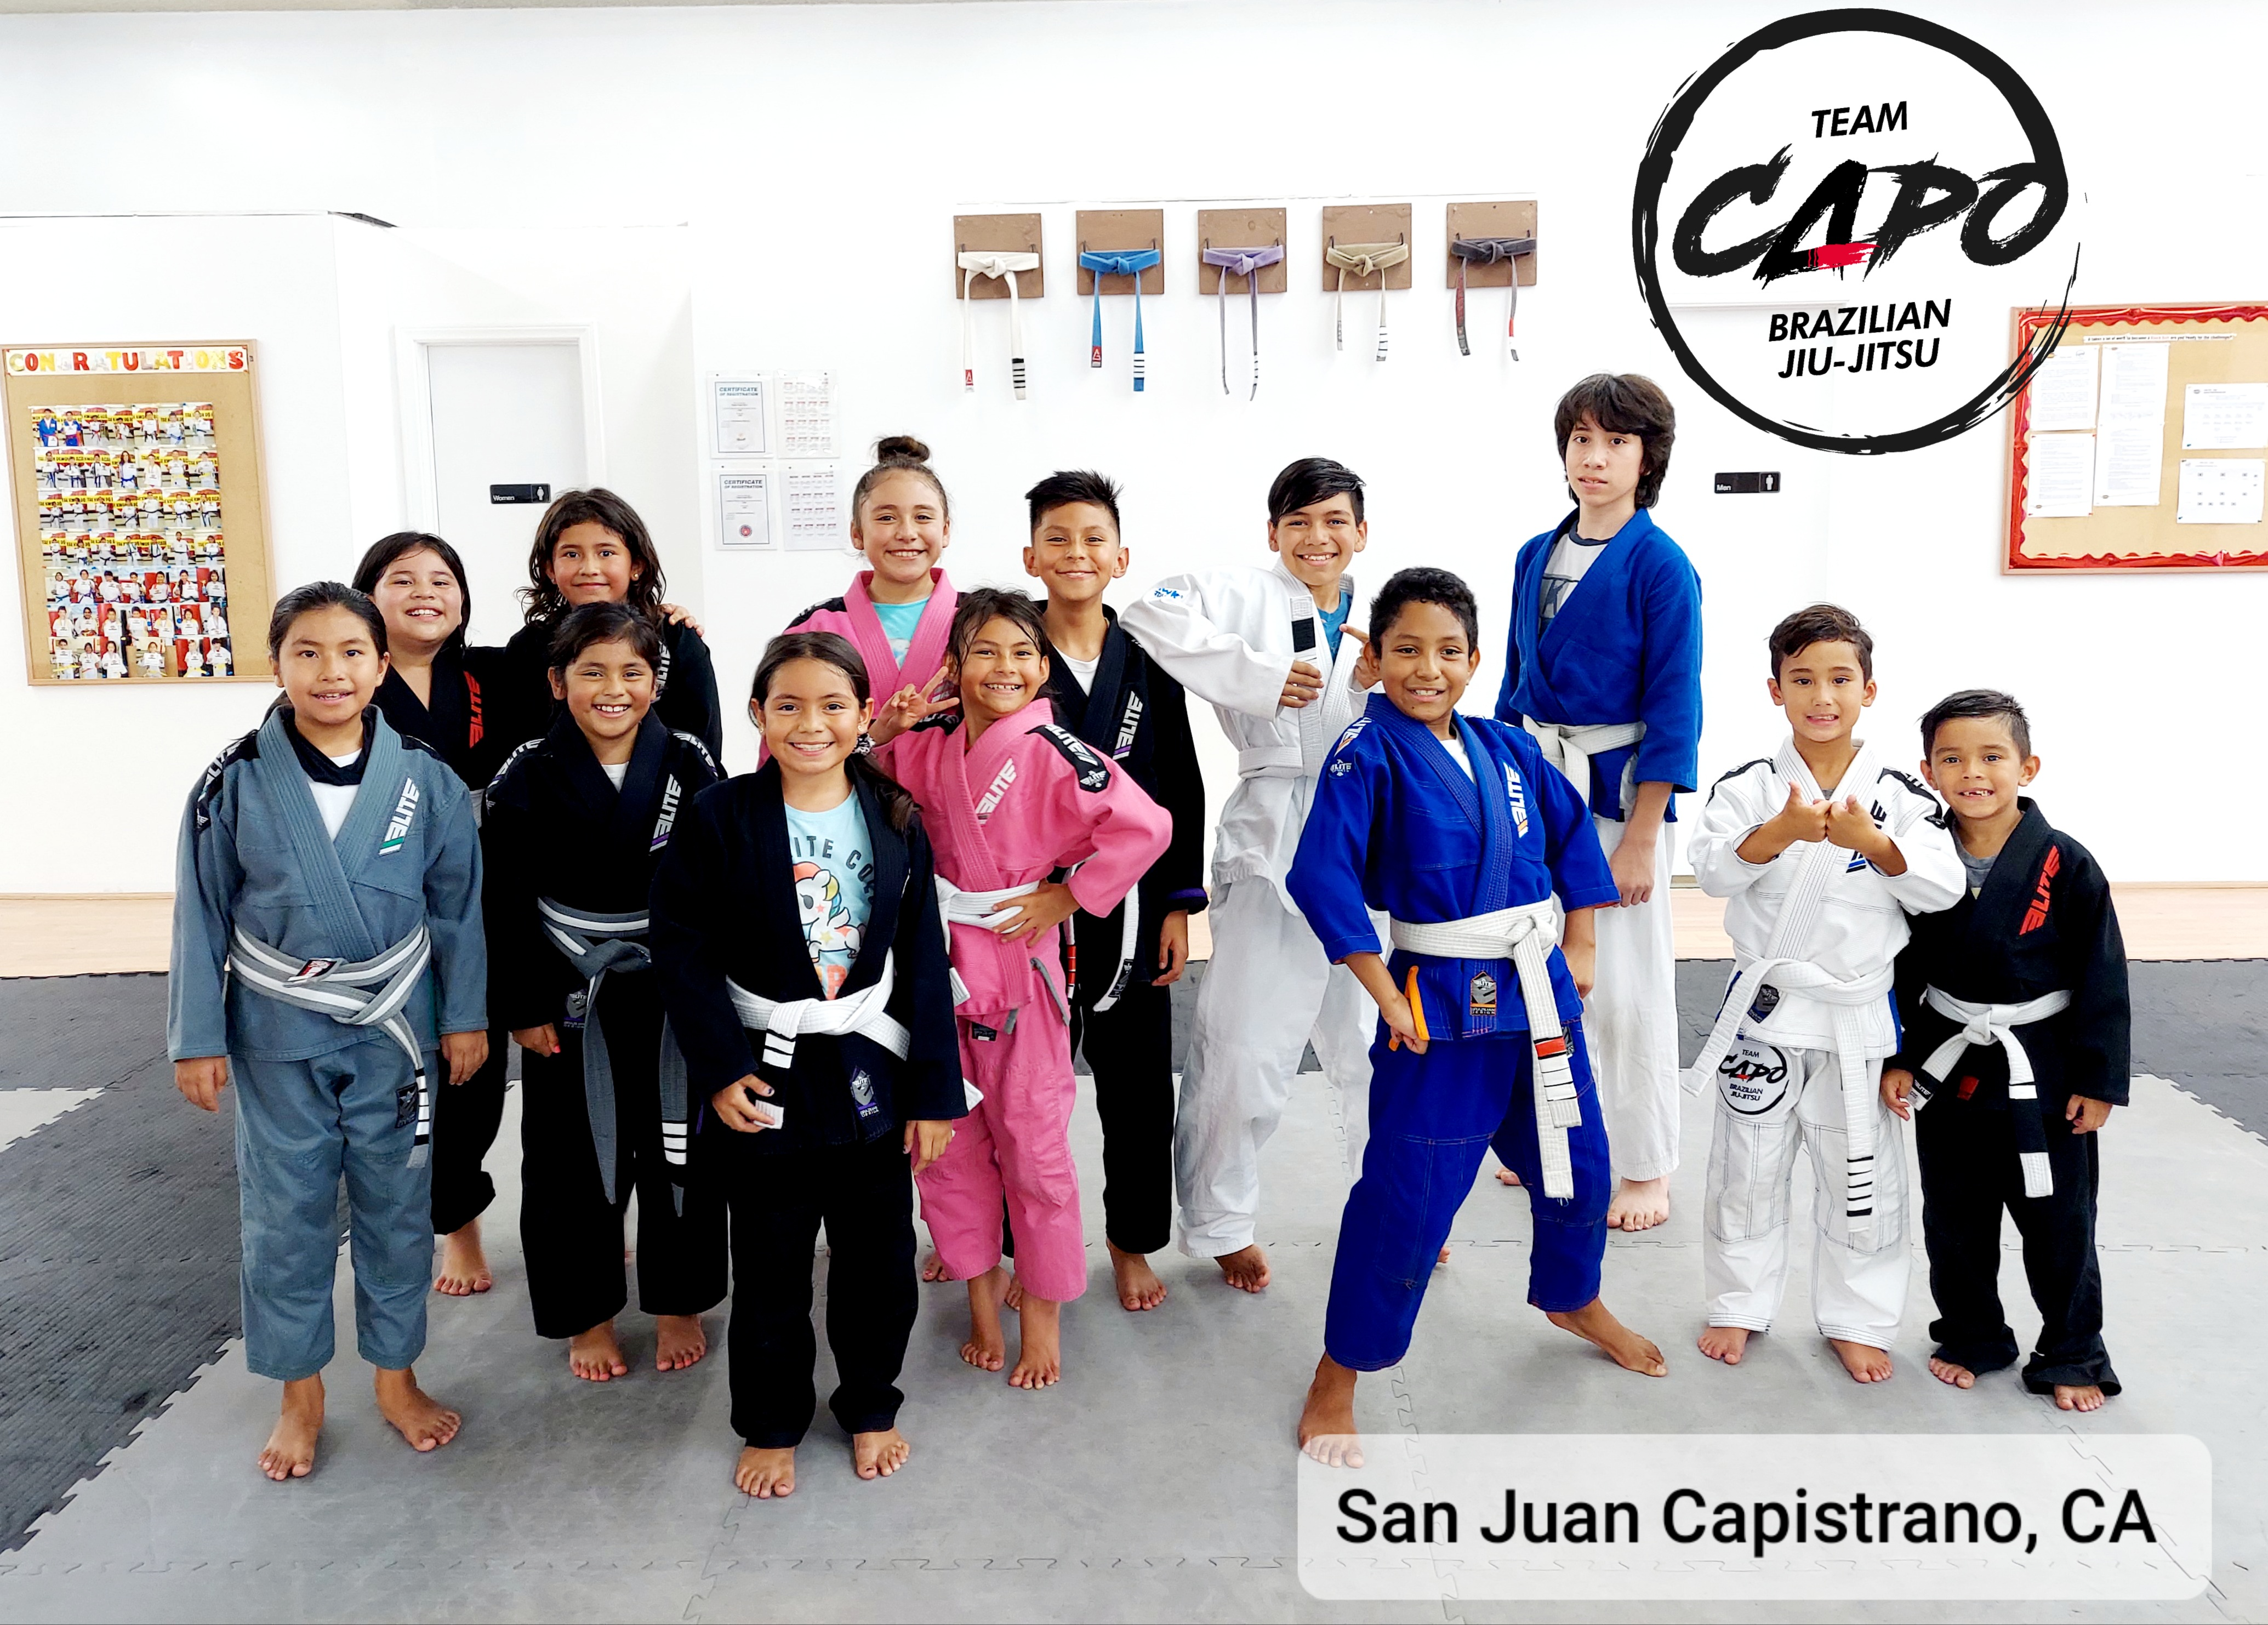 Team Capo BJJ kids